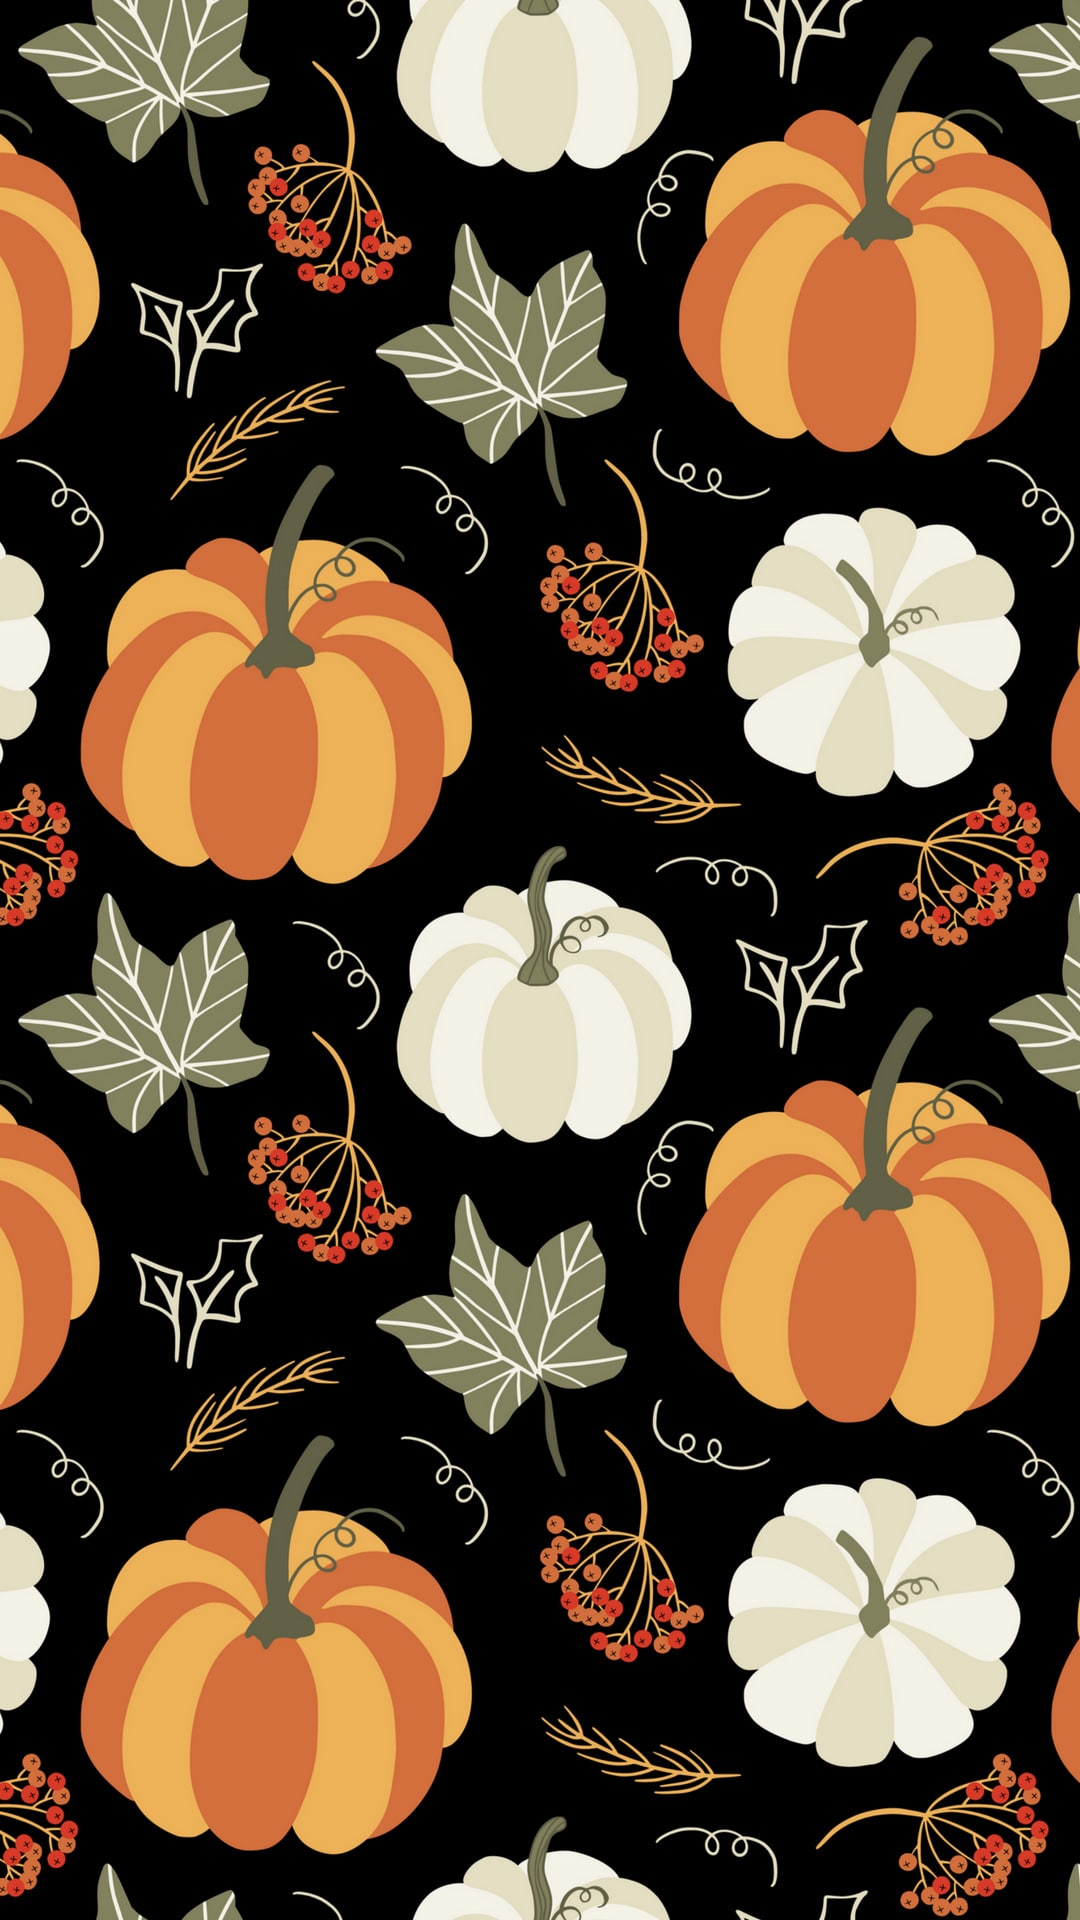 Aesthetic October Wallpapers Kolpaper Awesome Free Hd Wallpapers